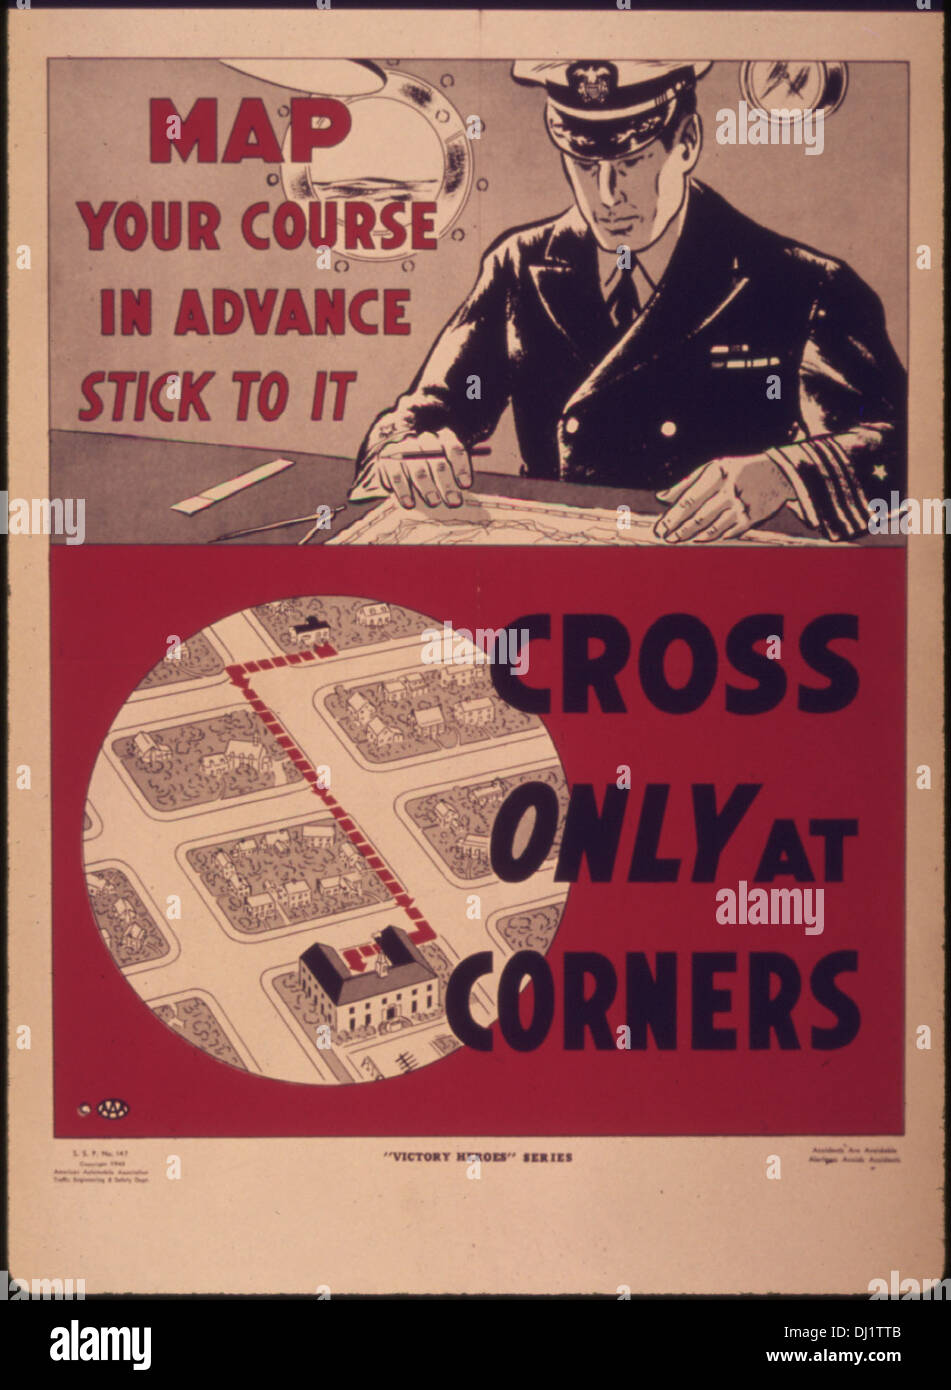 Map your course in advance...stick to it cross only at corners 980 - Stock Image